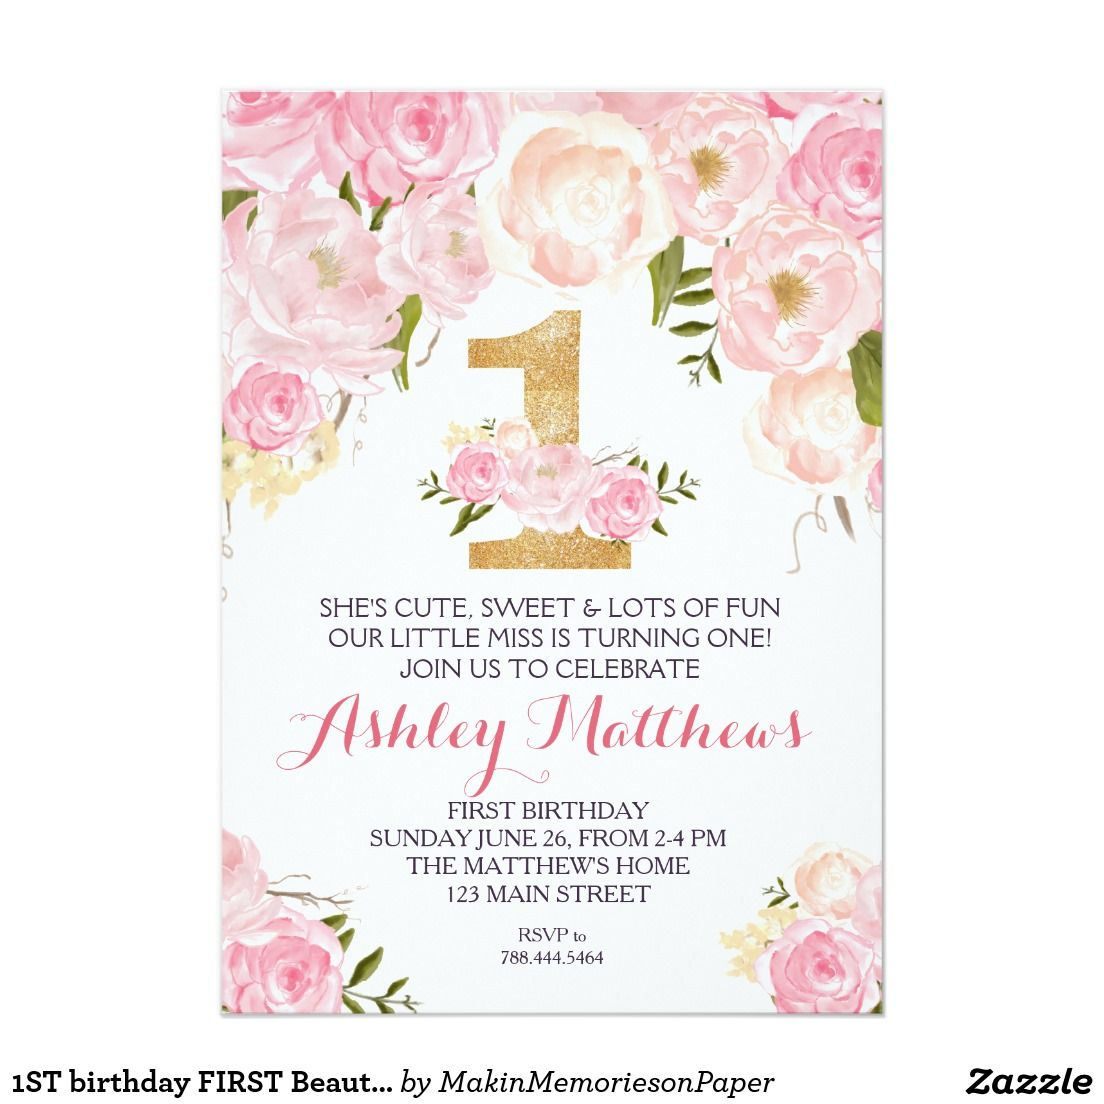 1ST birthday FIRST Beautiful Floral Invitation, Card | Floral invitation